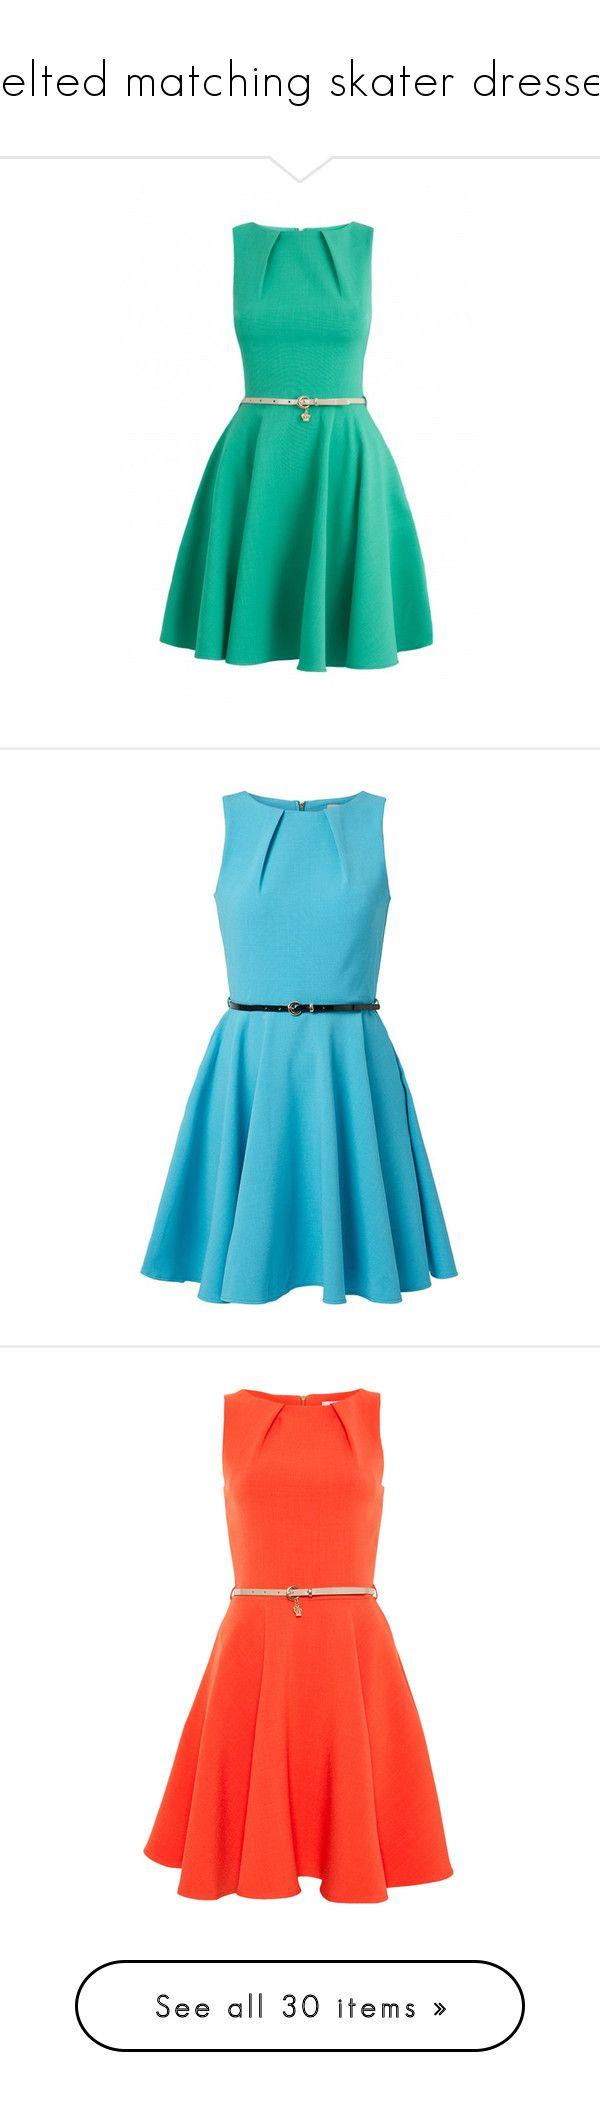 """""""belted matching skater dresses"""" by lulucosby ❤ liked on Polyvore featuring dresses, vestidos, short dresses, robe, green cocktail dress, flared dresses, belted dresses, green mini dress, flared hem dress and turquoise dress"""